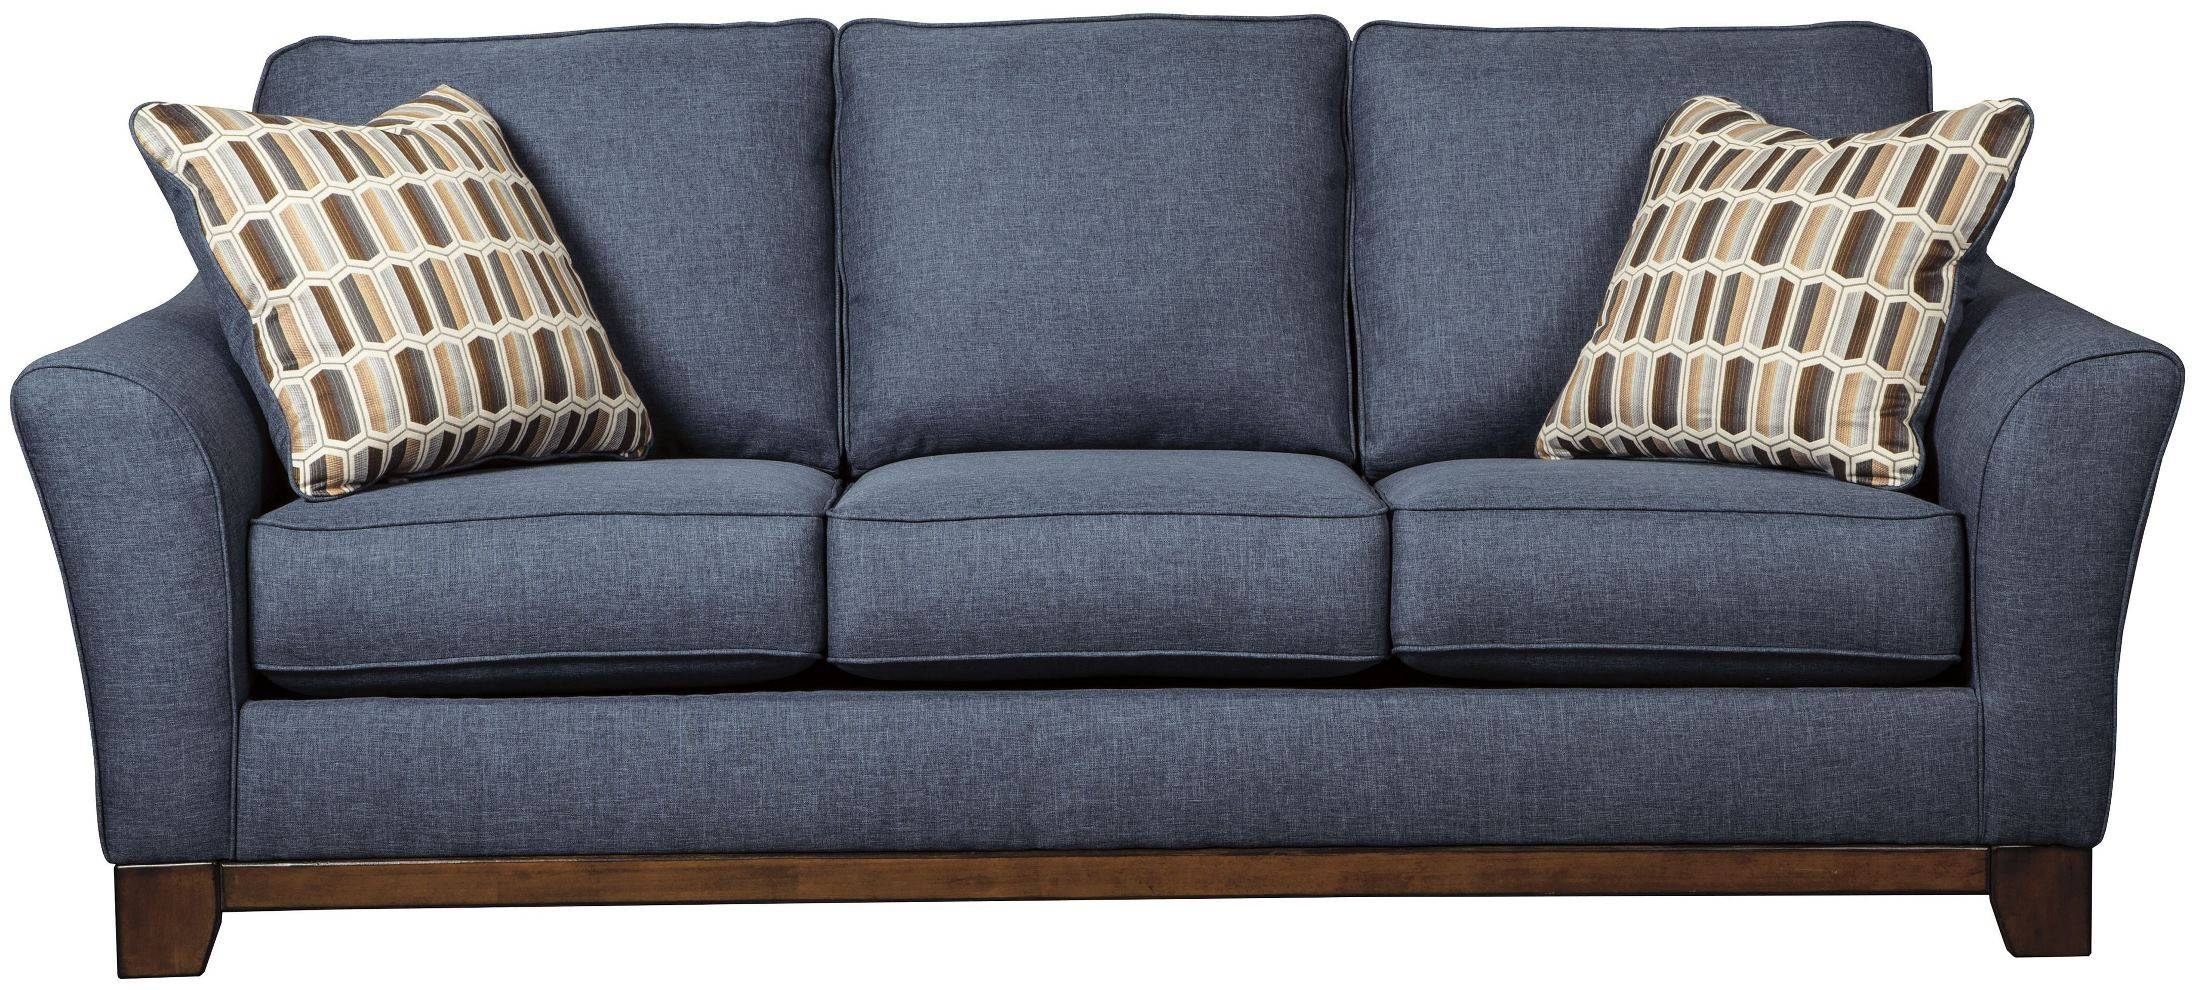 Janley Denim Sofa with Denim Sofas and Loveseats (Image 13 of 15)